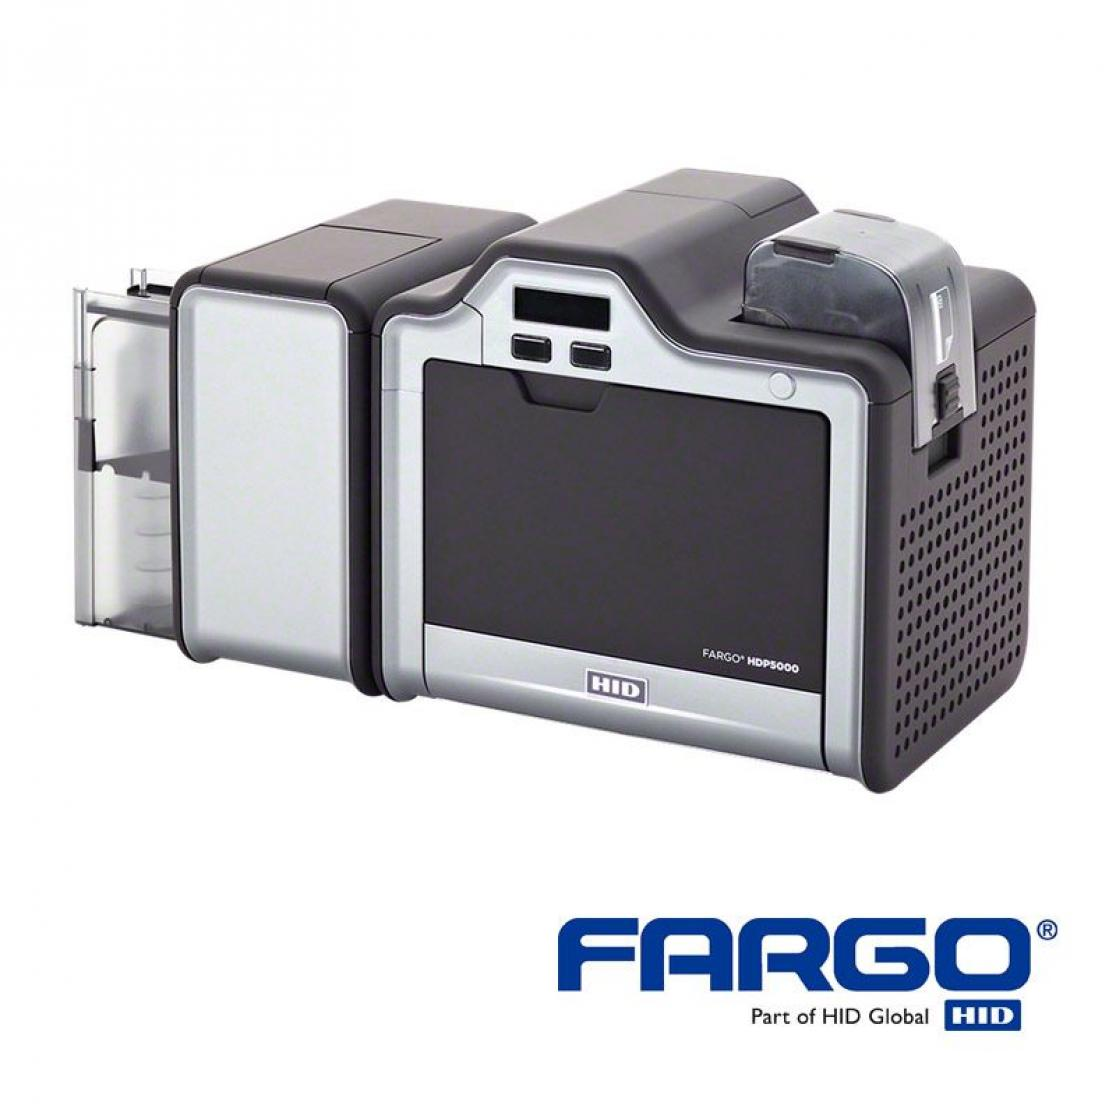 HID Fargo HDP5000 with flipper module